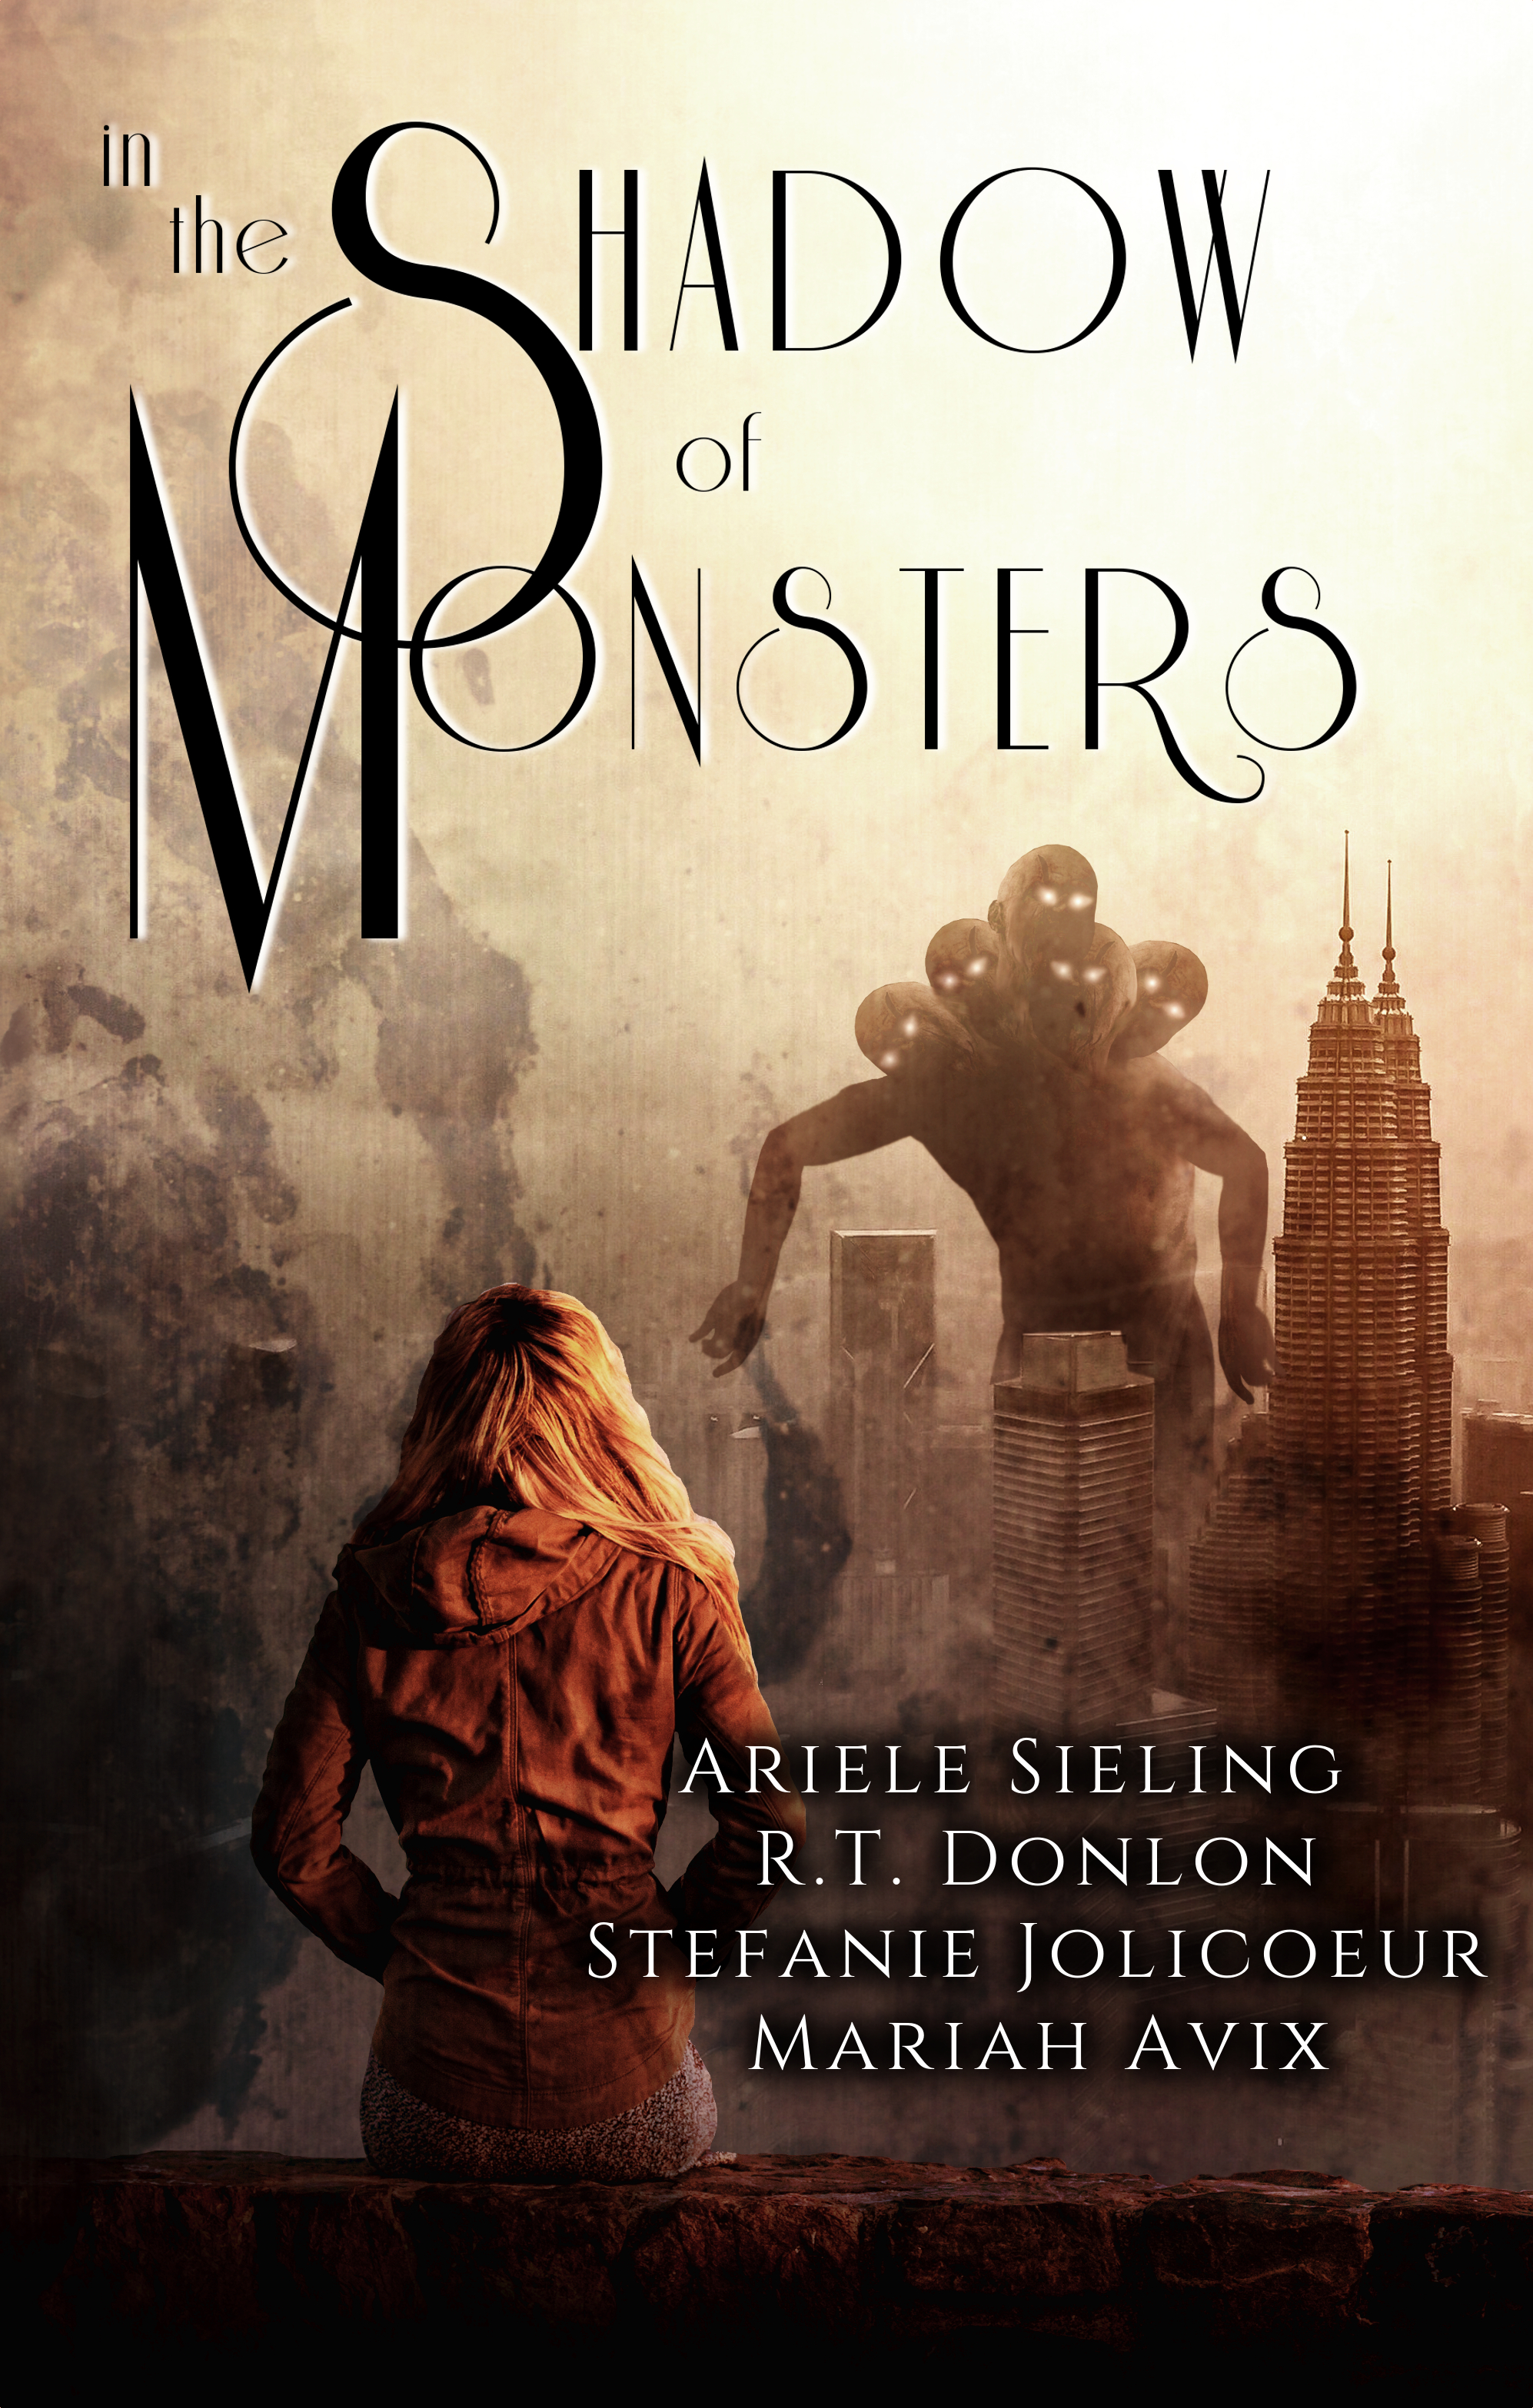 The book cover for In The Shadow of Monsters, the anthology